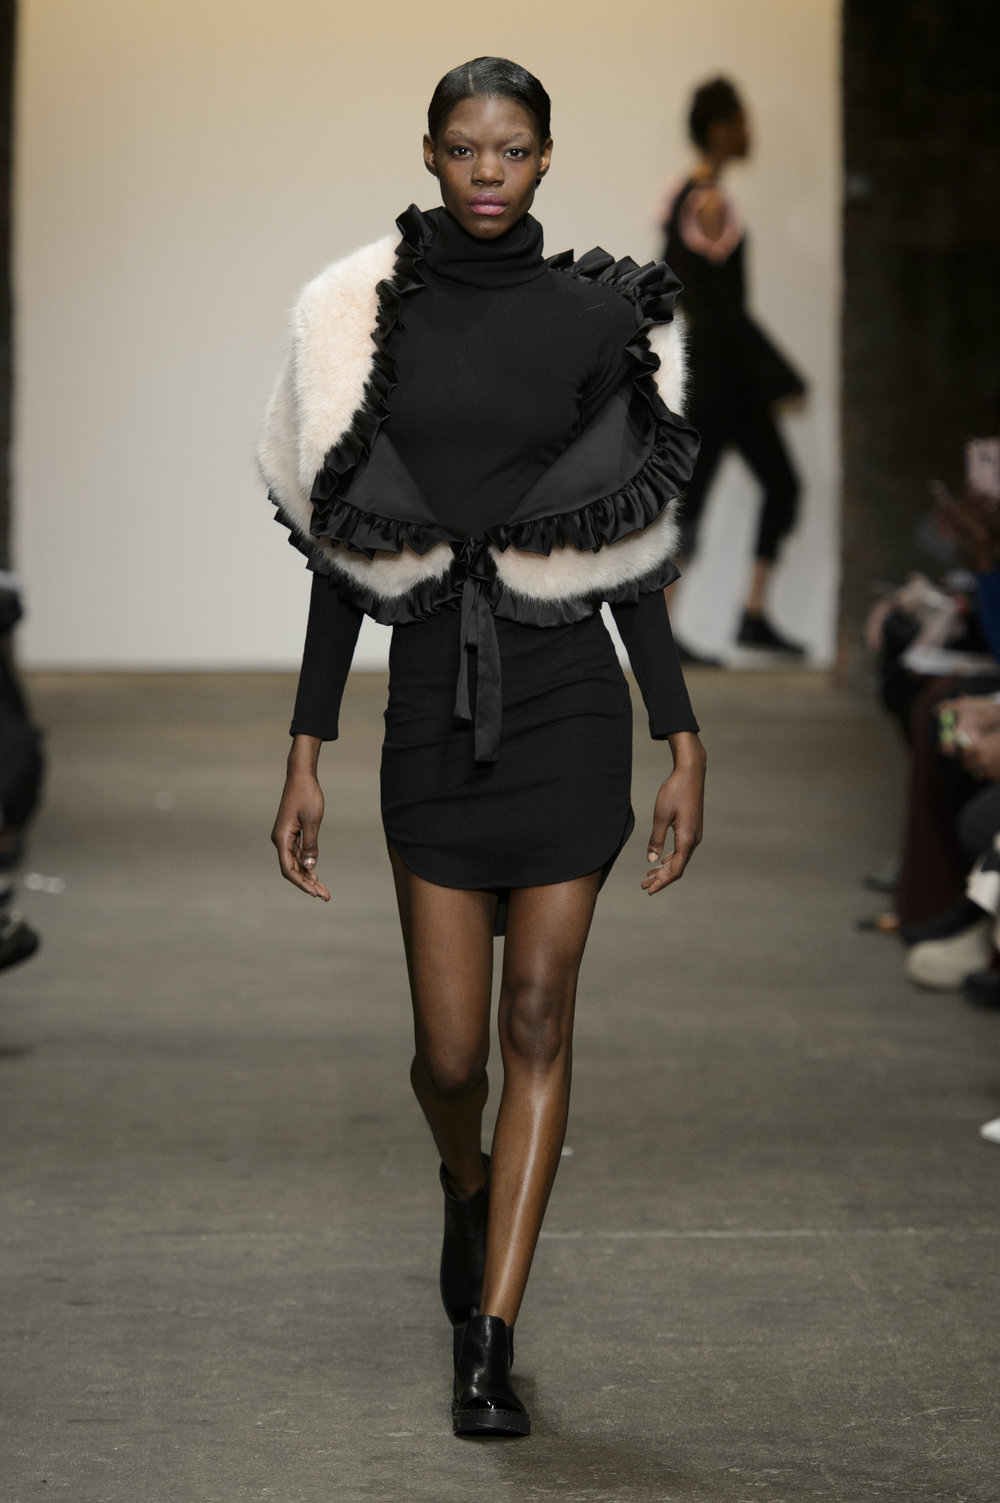 SAKU New York NYFW FW17